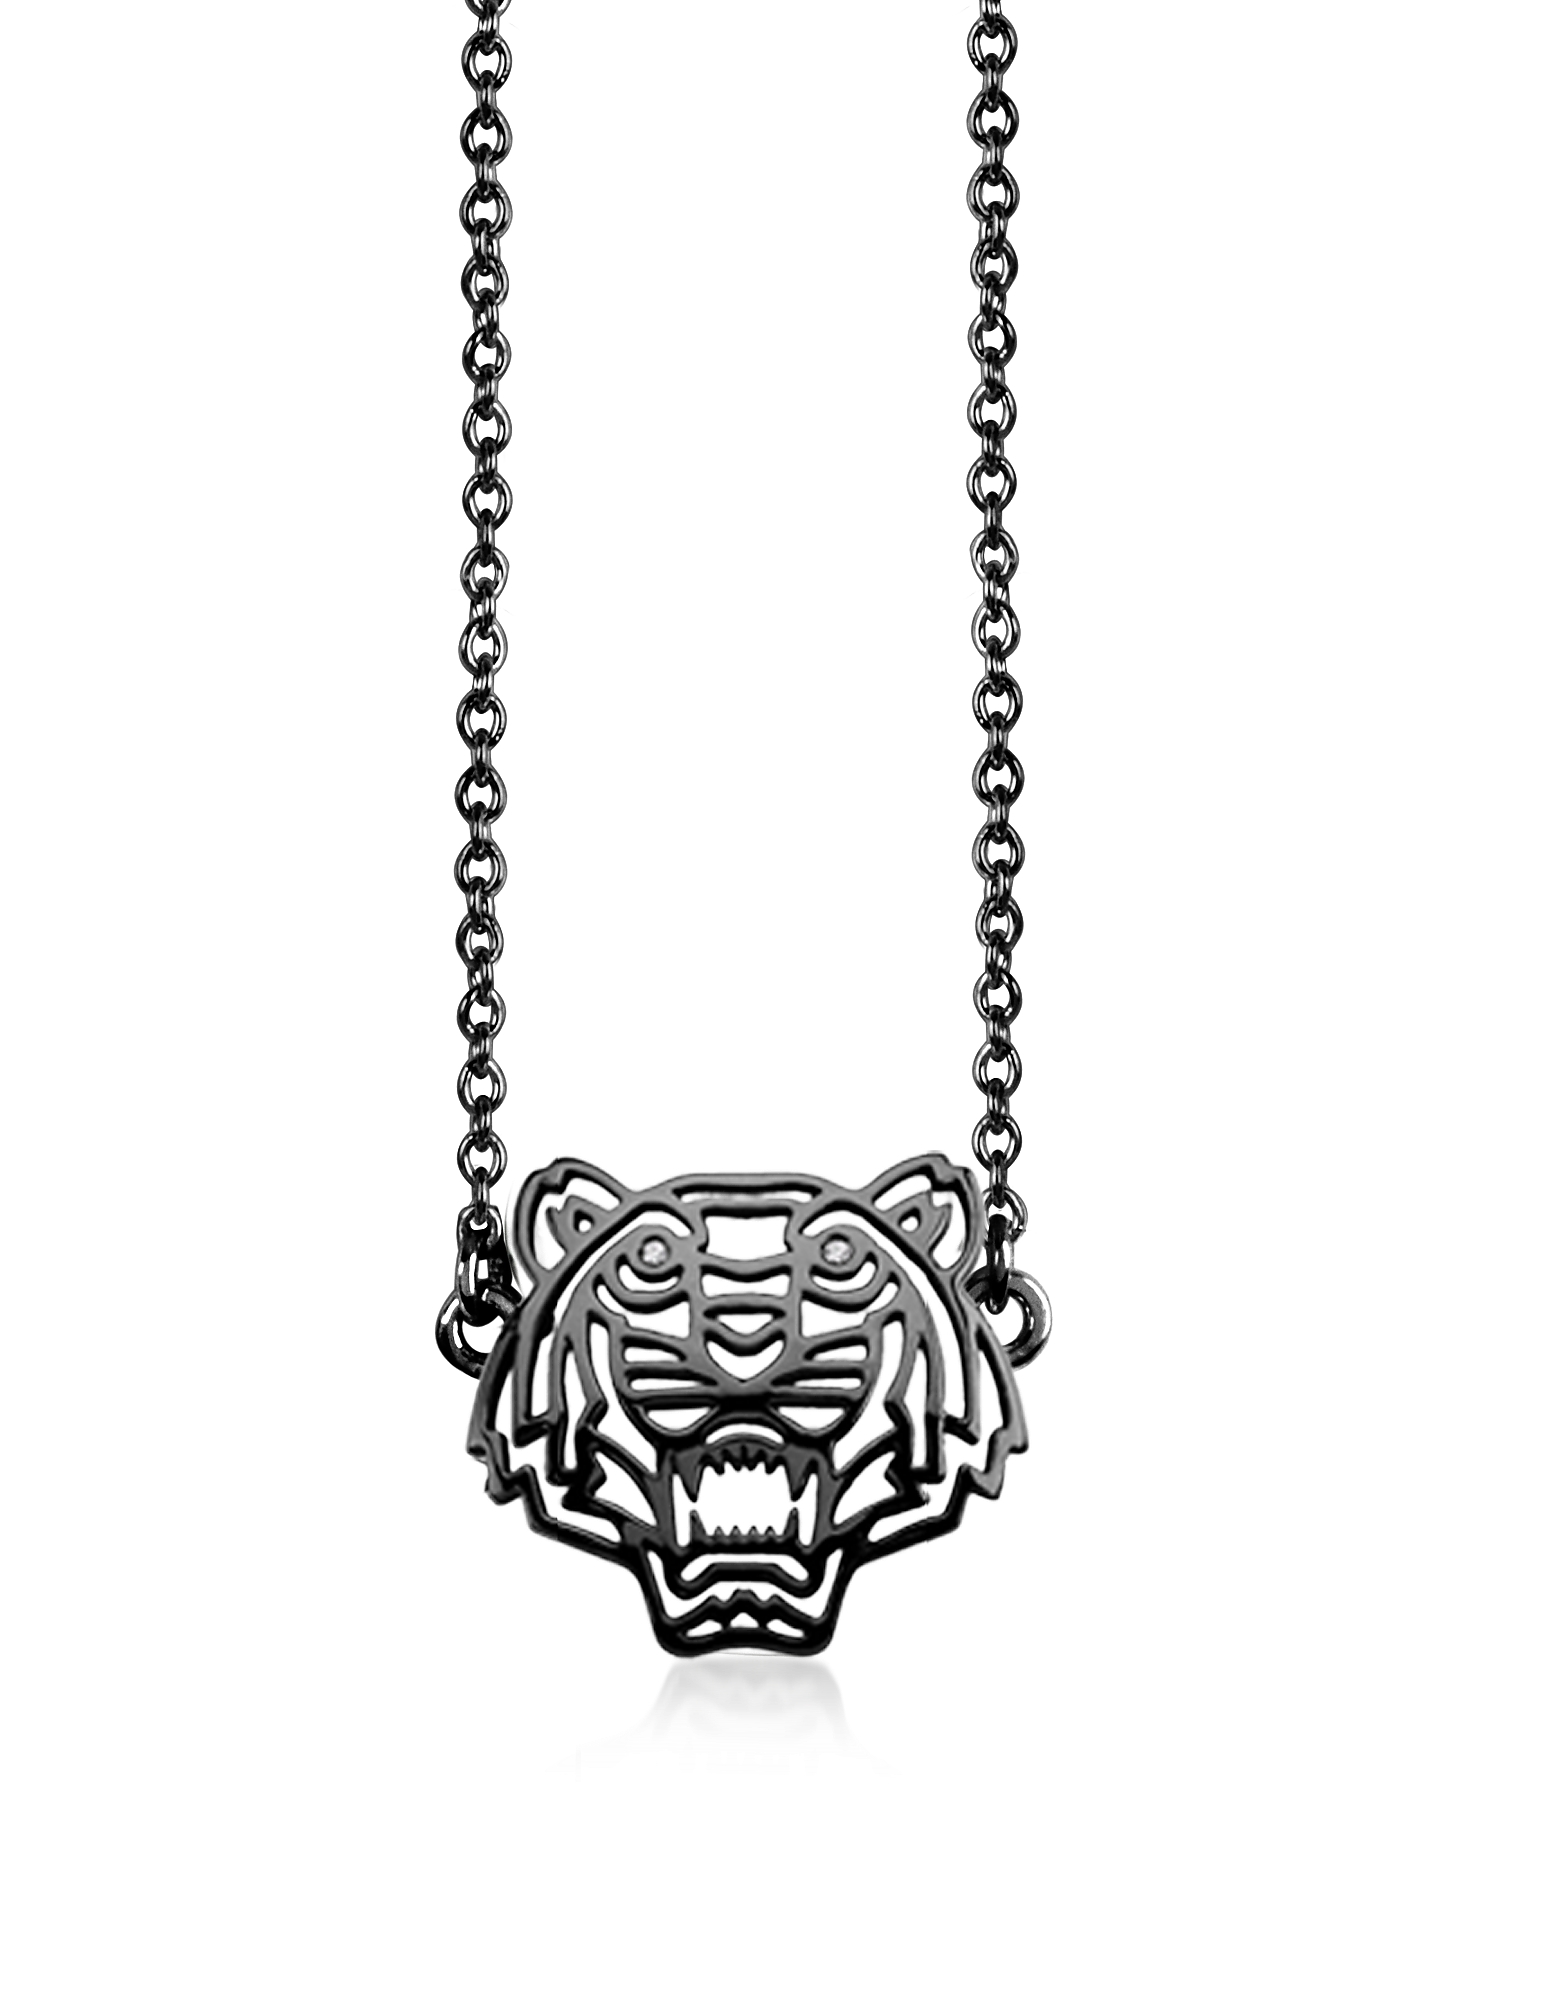 Kenzo Necklaces, Ruthenium Plated Sterling Silver Cut Out Tiger Necklace w/Crystal